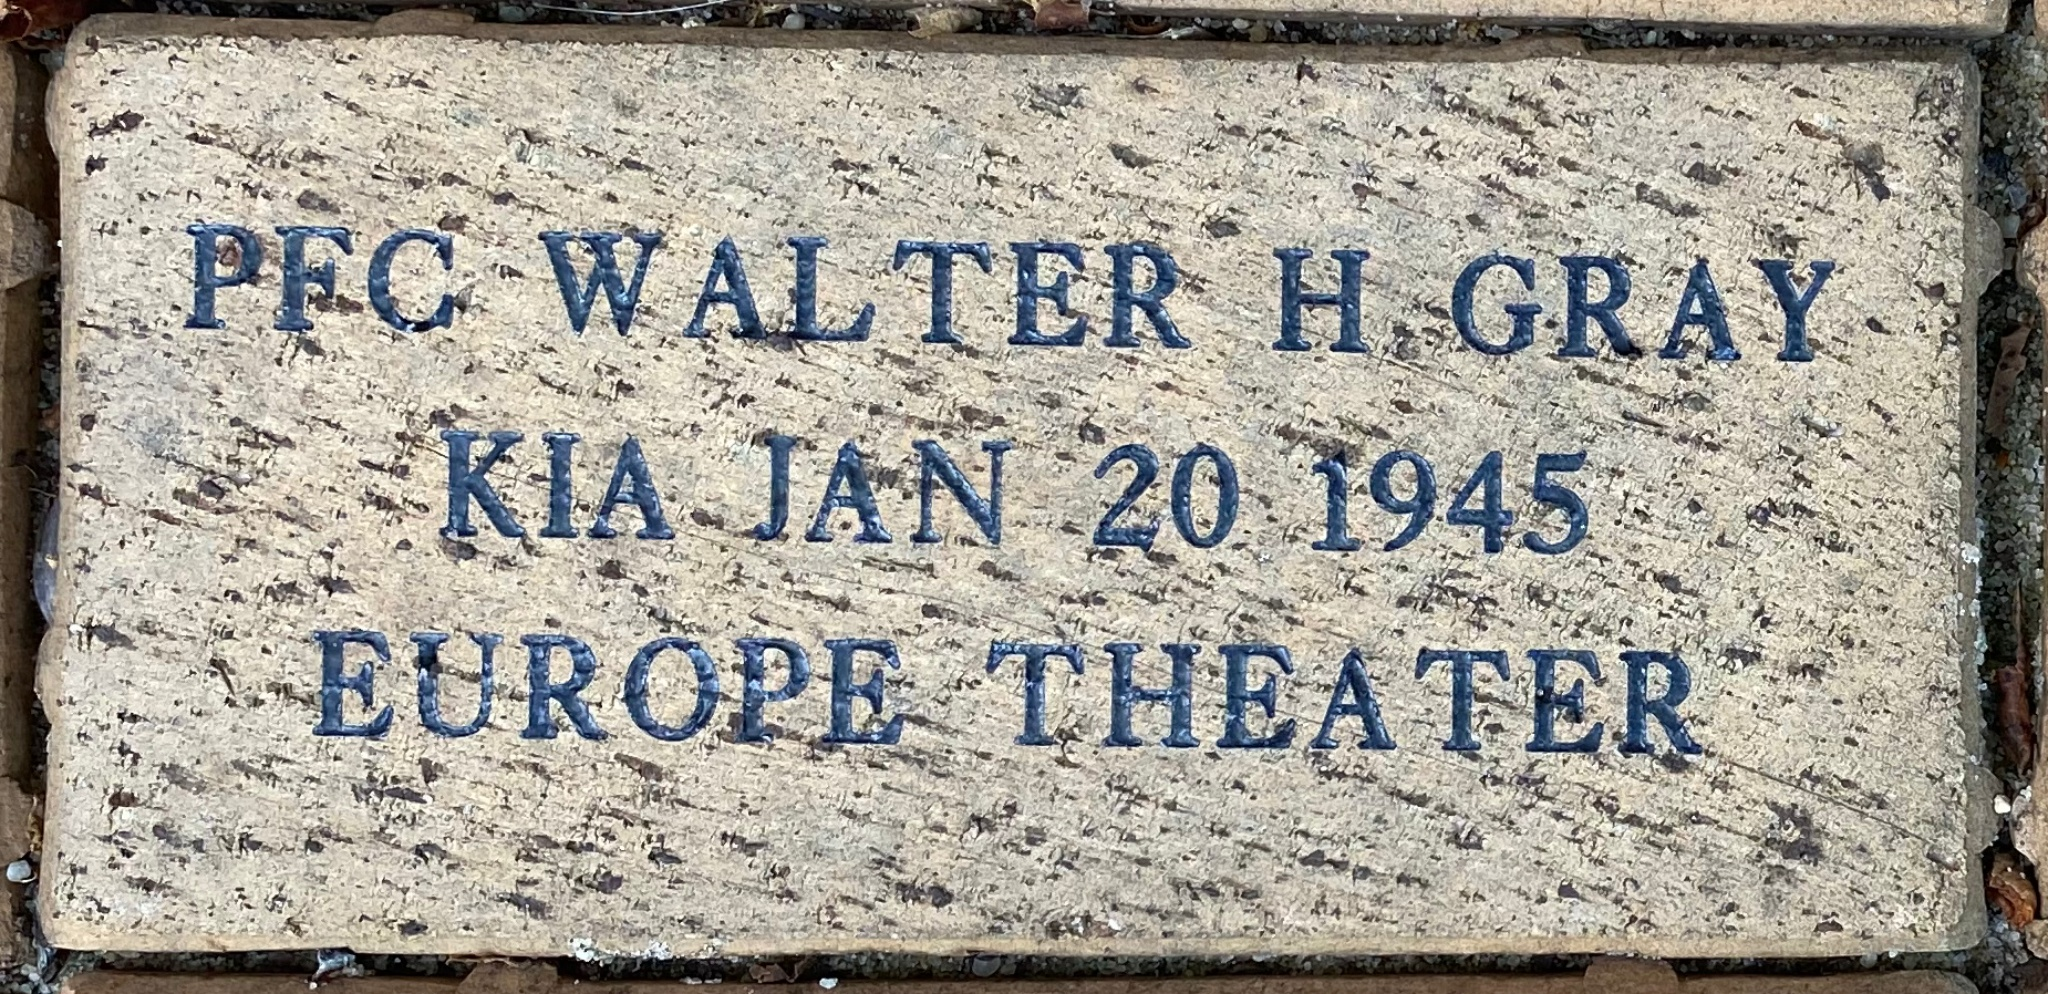 PFC WALTER H GRAY KIA JAN 20 1945 EUROPEAN THEATER